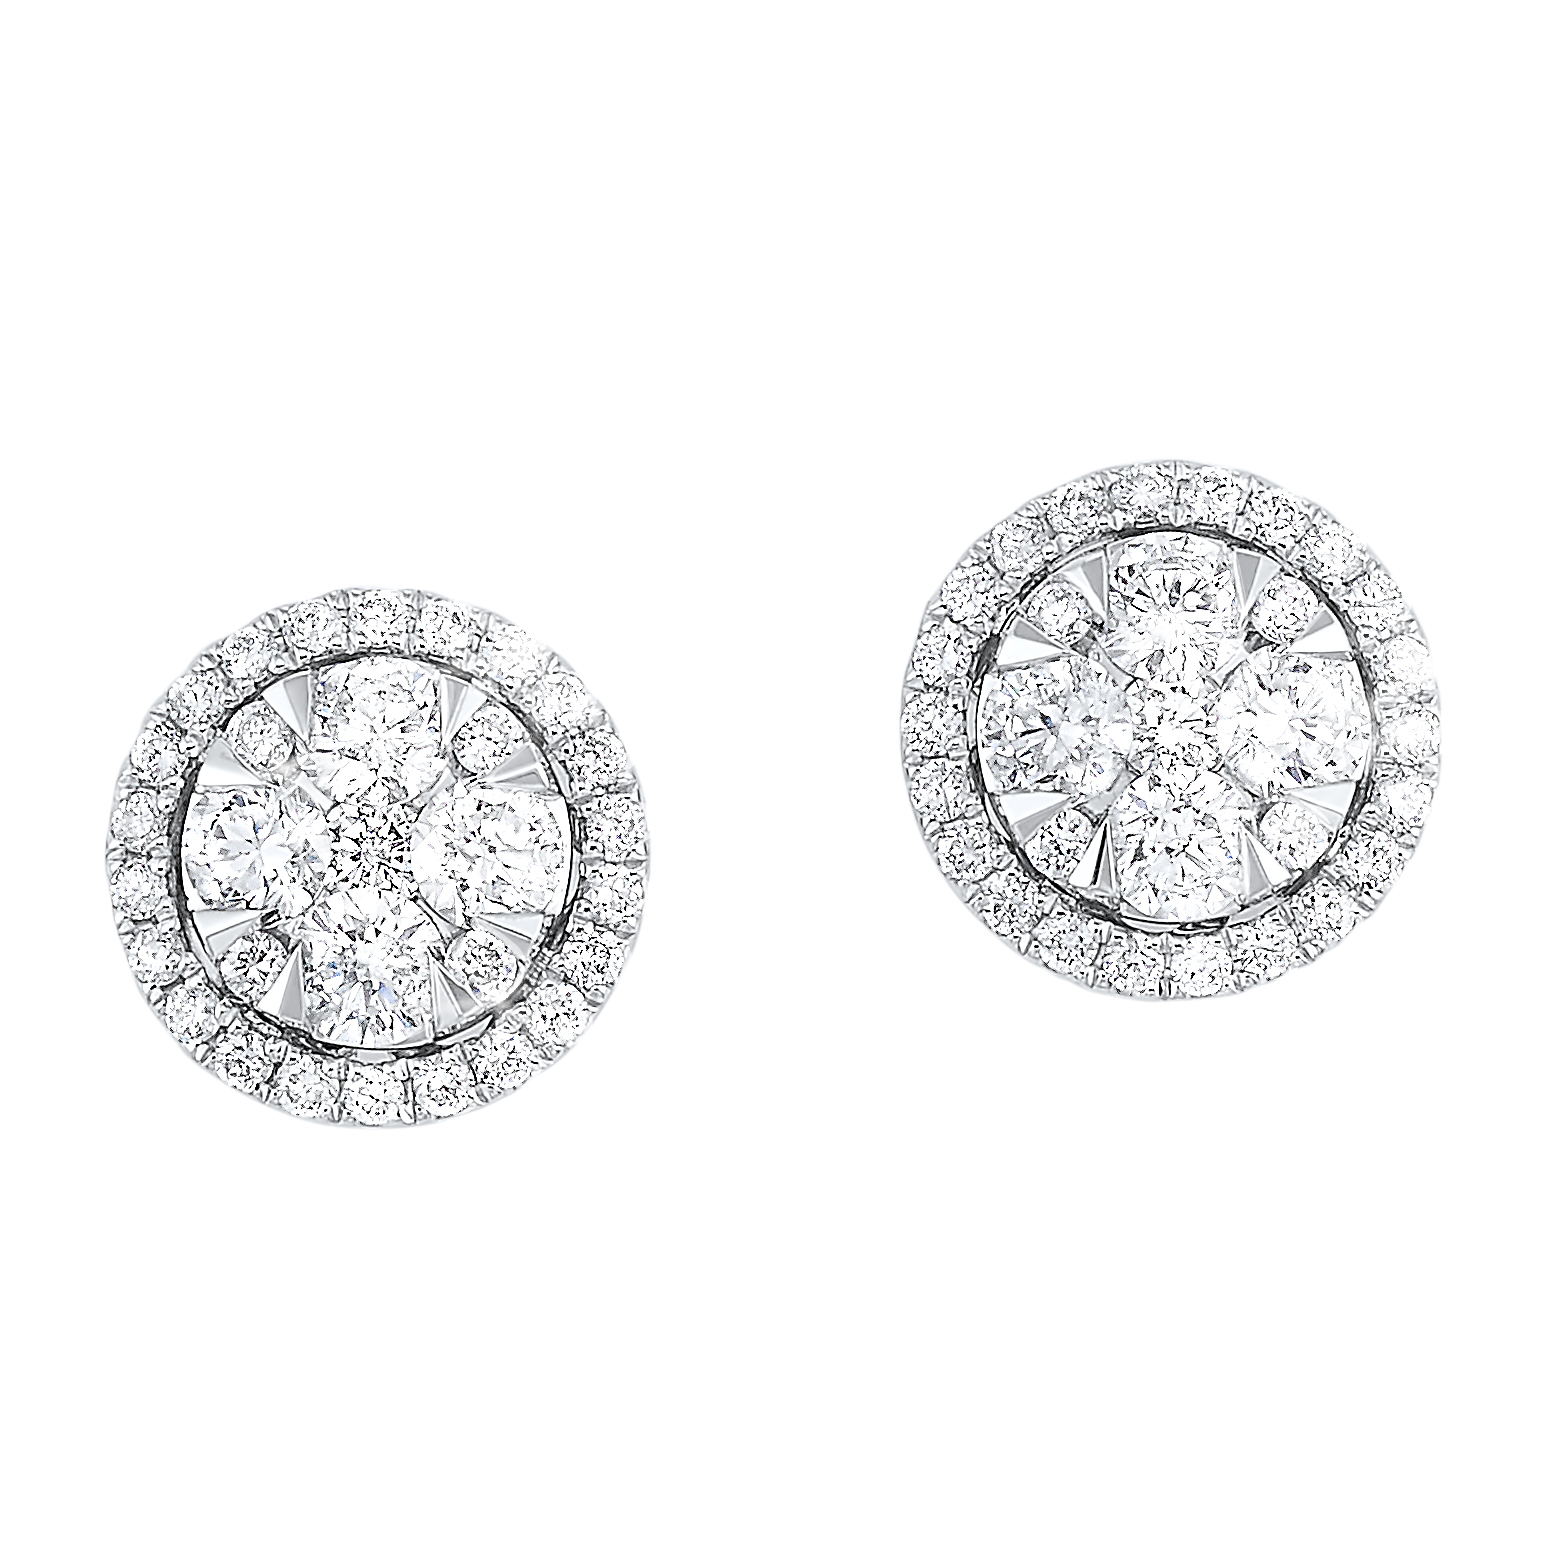 Oval Halo Diamond Earrings in 14K White Gold (3/4 ct. tw.) Moseley Diamond Showcase Inc Columbia, SC